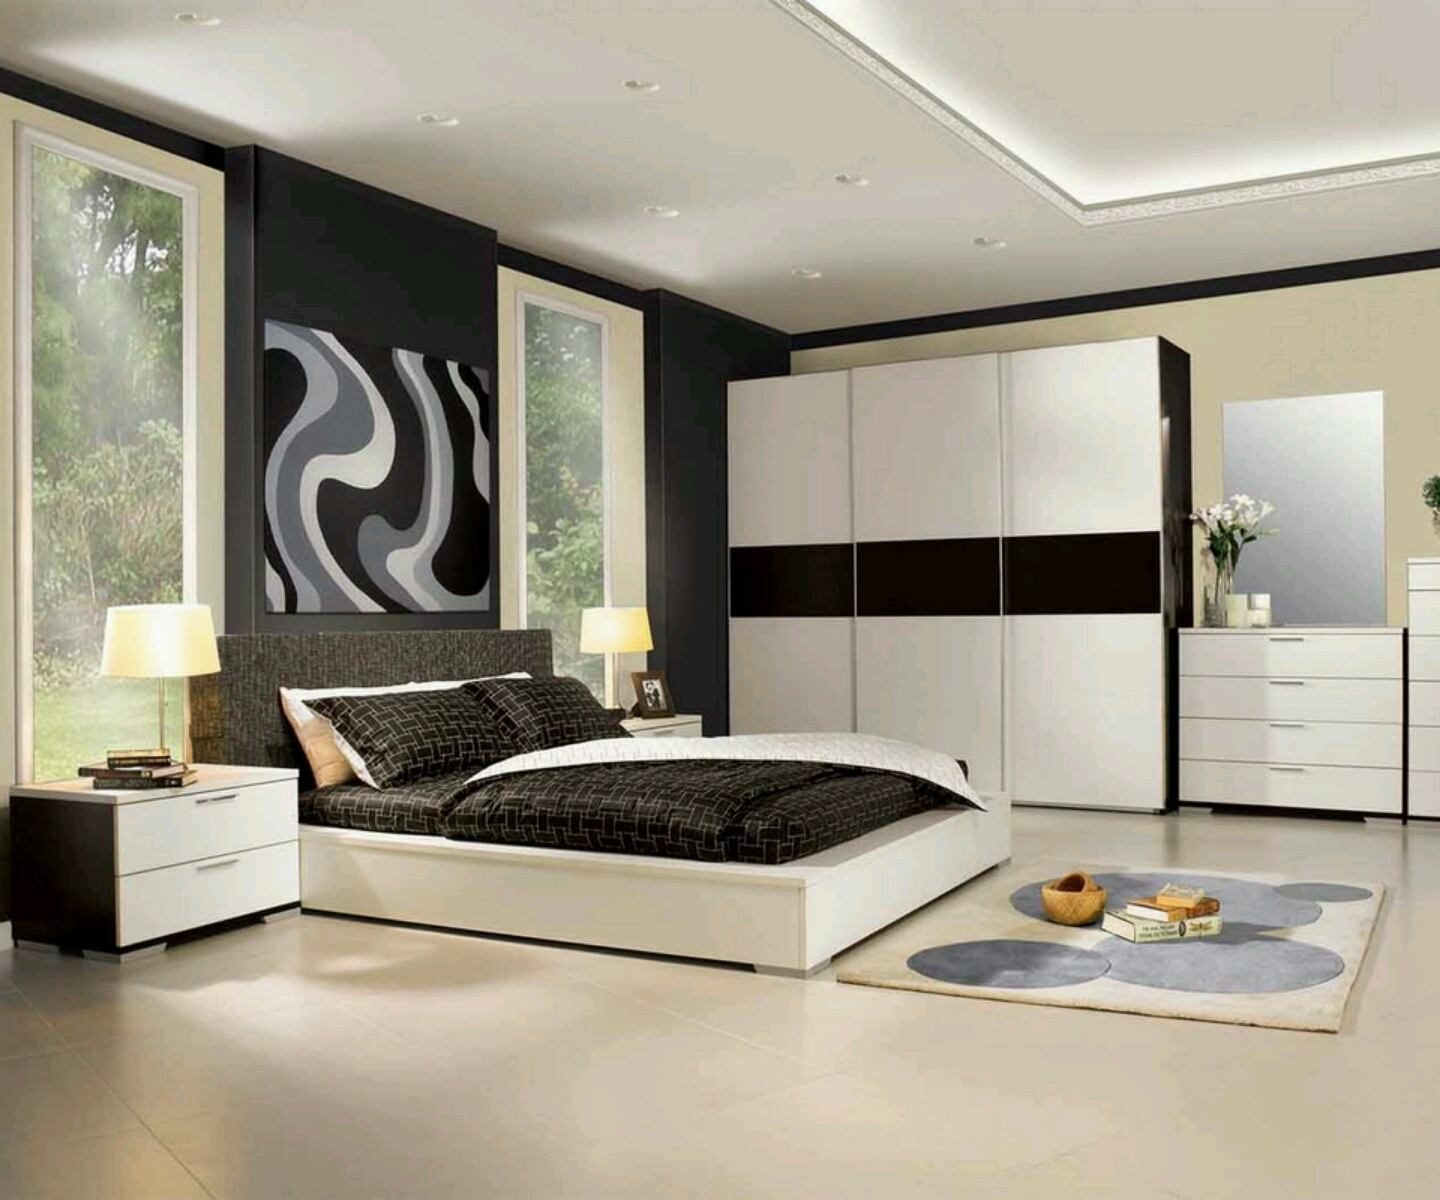 bedroom furniture designs images photo - 4